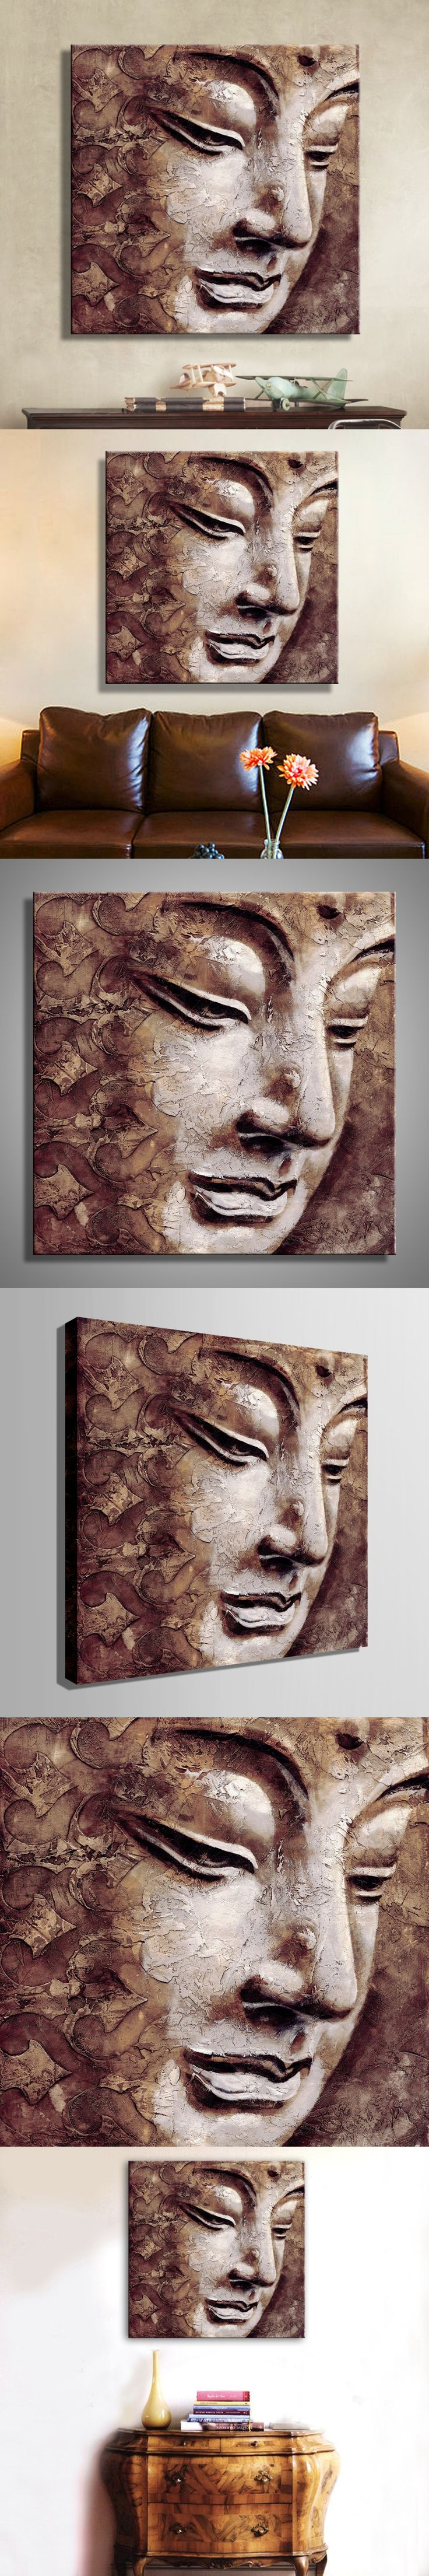 Painting For Living Room 25 Best Ideas About Buddha Living Room On Pinterest Buddha